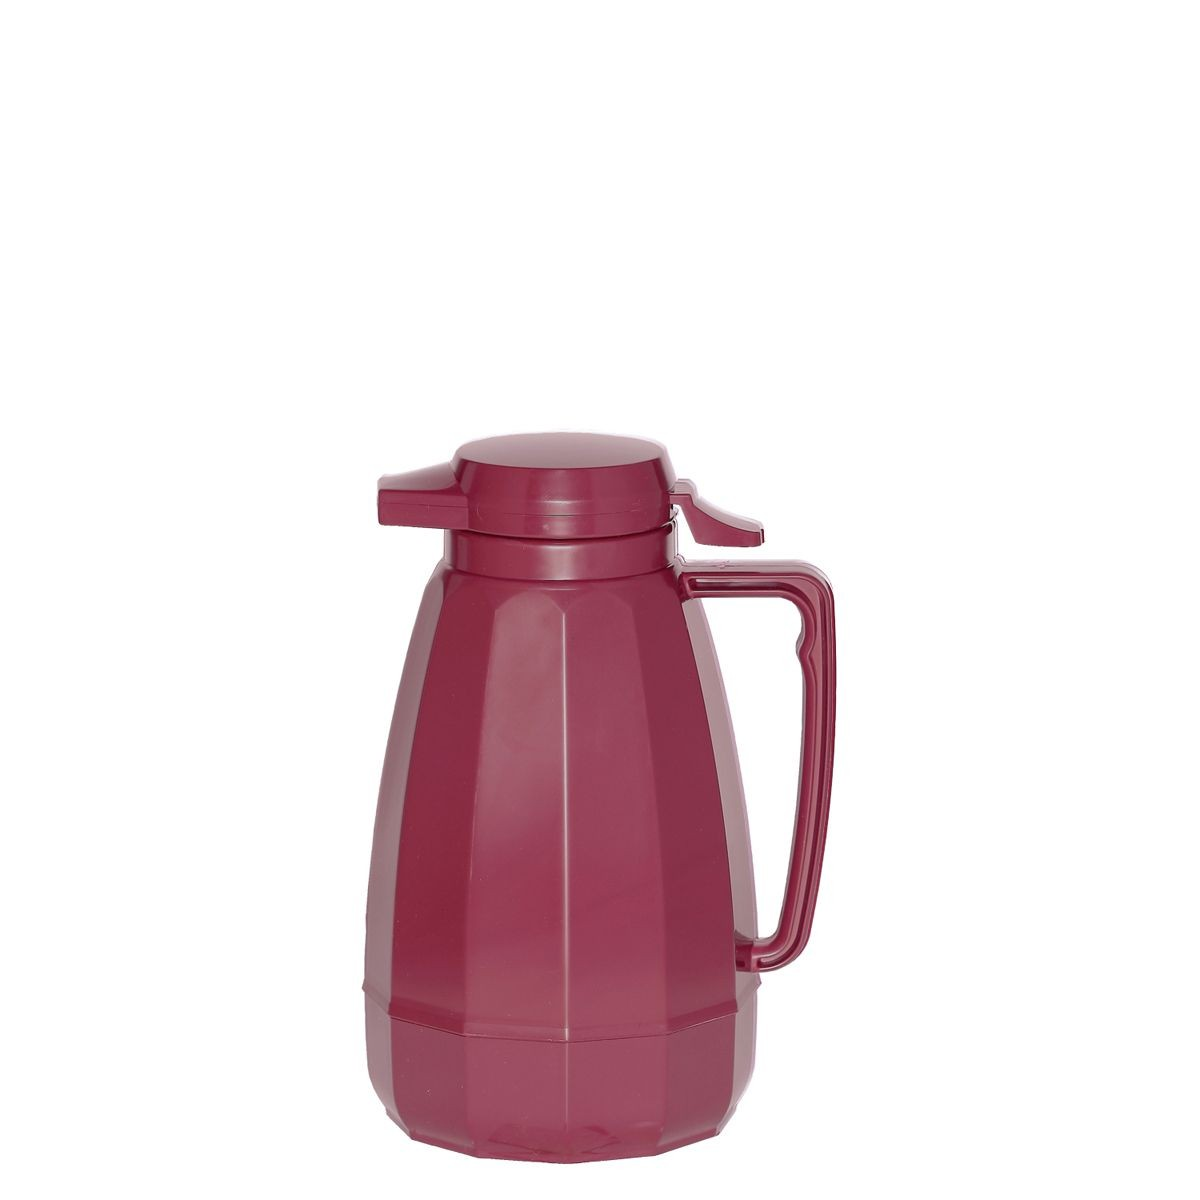 Service Ideas NG101BU New Generation Burgundy Coffee Server, 1 Liter (34 oz.)